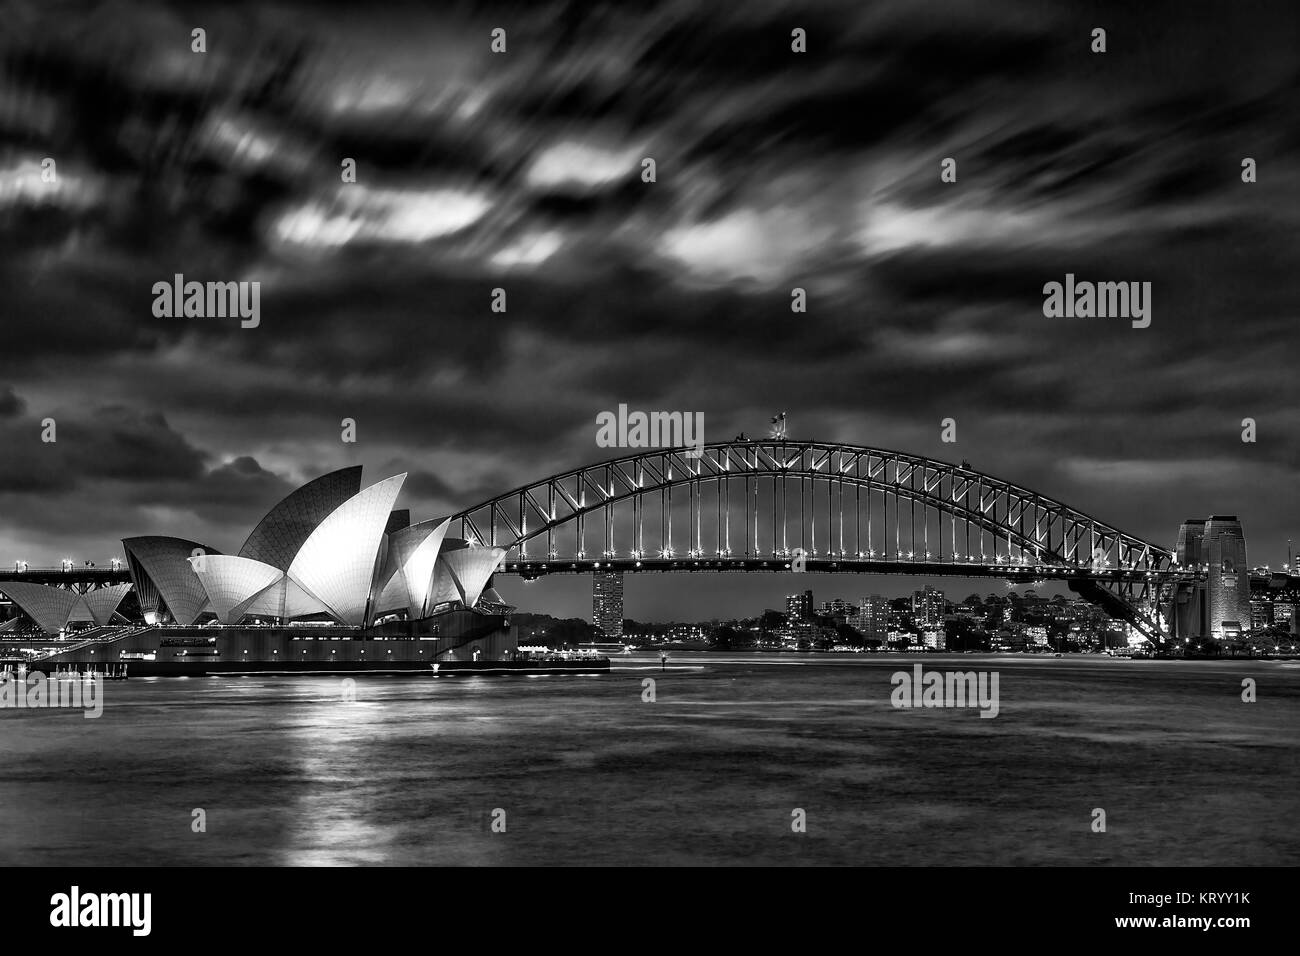 Sydney, Australia, 18 March 2017: World famous Sydney Opera House and Harbour bridge at sunset. Blurred clouds and Stock Photo